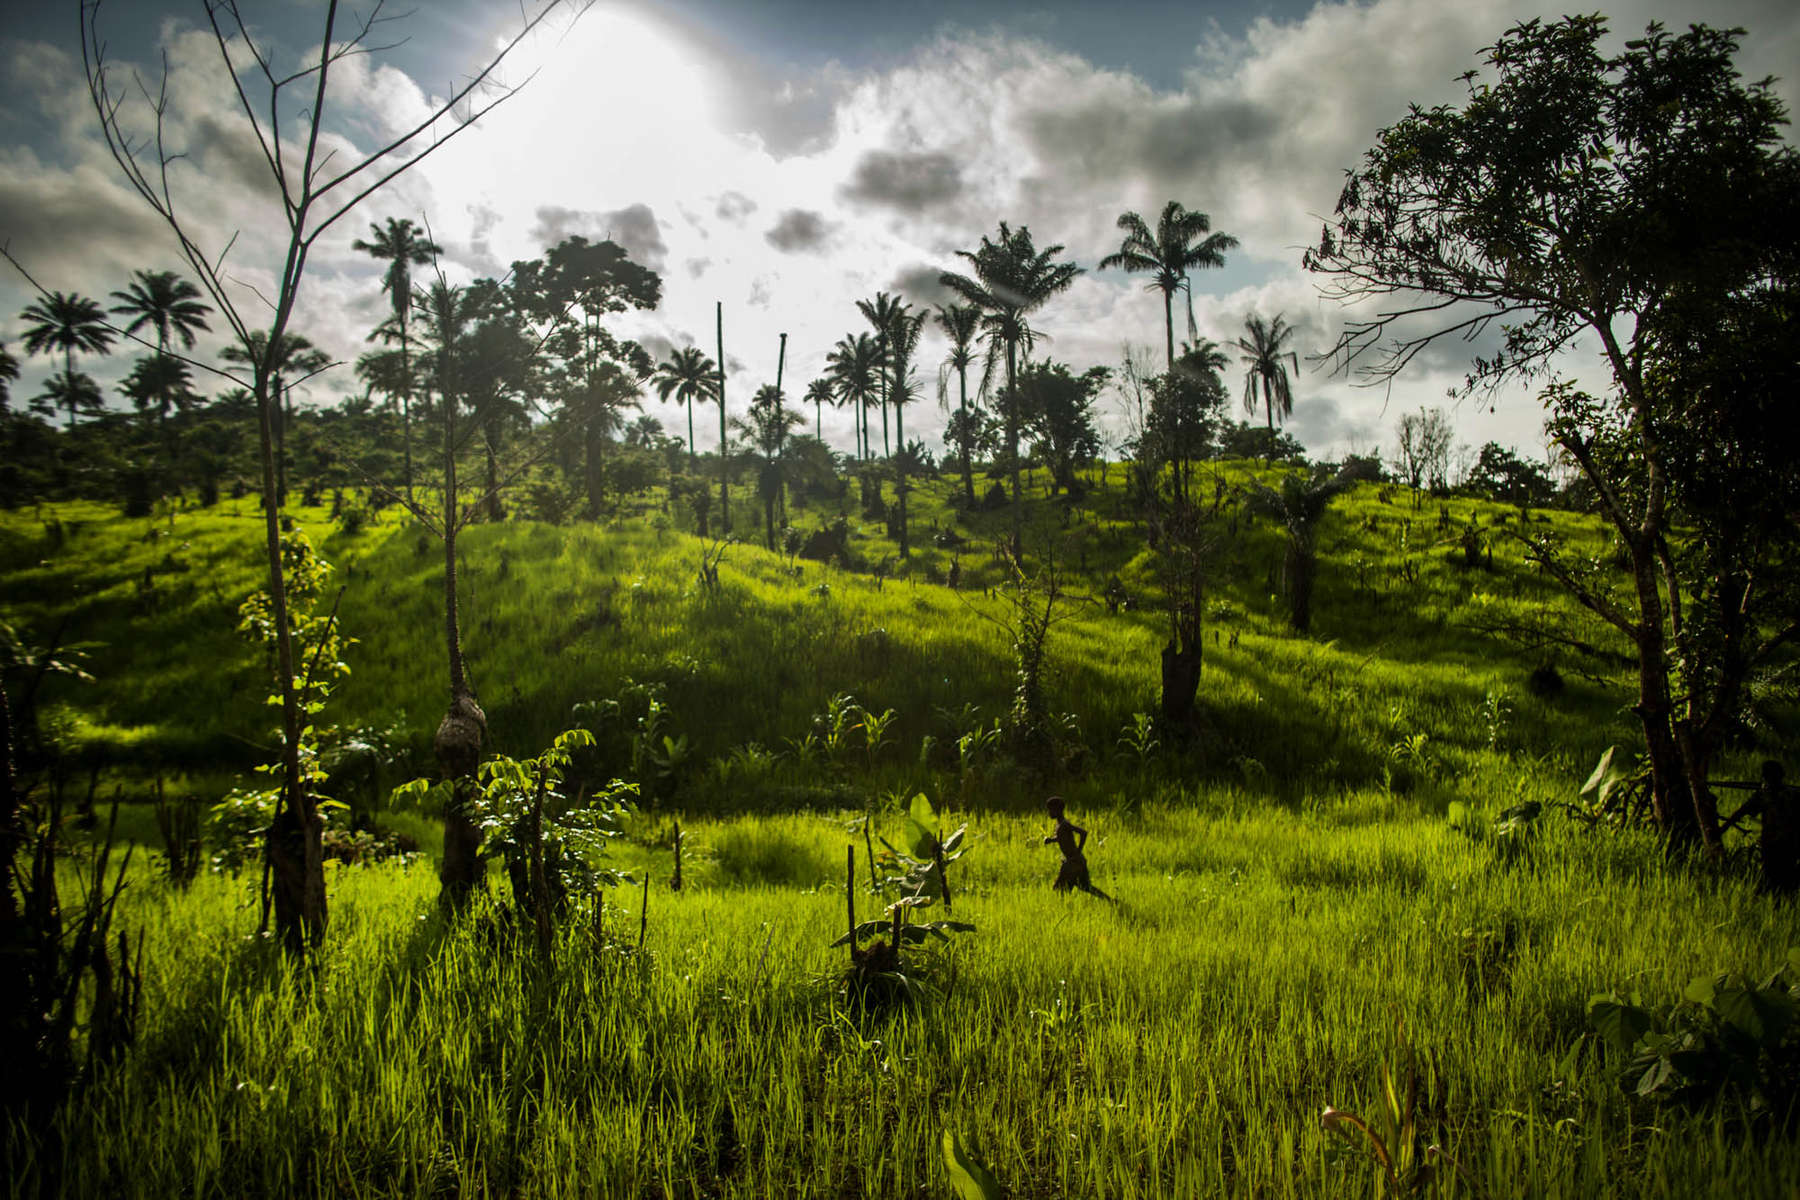 A boy wanders through a field of rice near the village of Dia, Sierra Leone on Monday, August 18, 2014. Sierra Leone has been heavy affected by the Ebola outbreak in West Africa with many of its cases found in rural areas. (Pete Muller/Prime for the Washington Post)